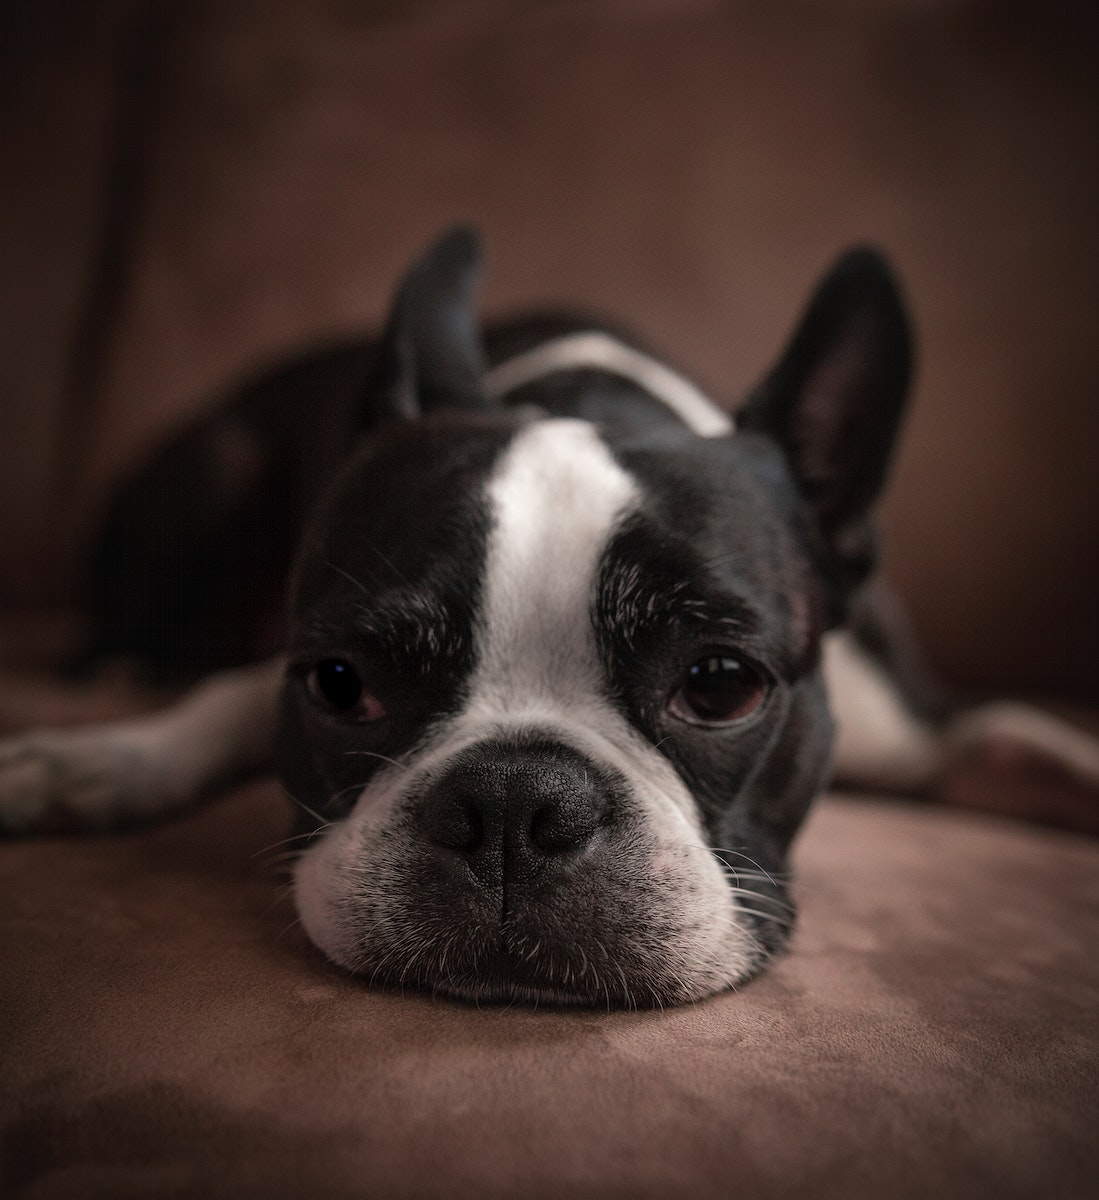 Young Boston Terrier lying on a couch